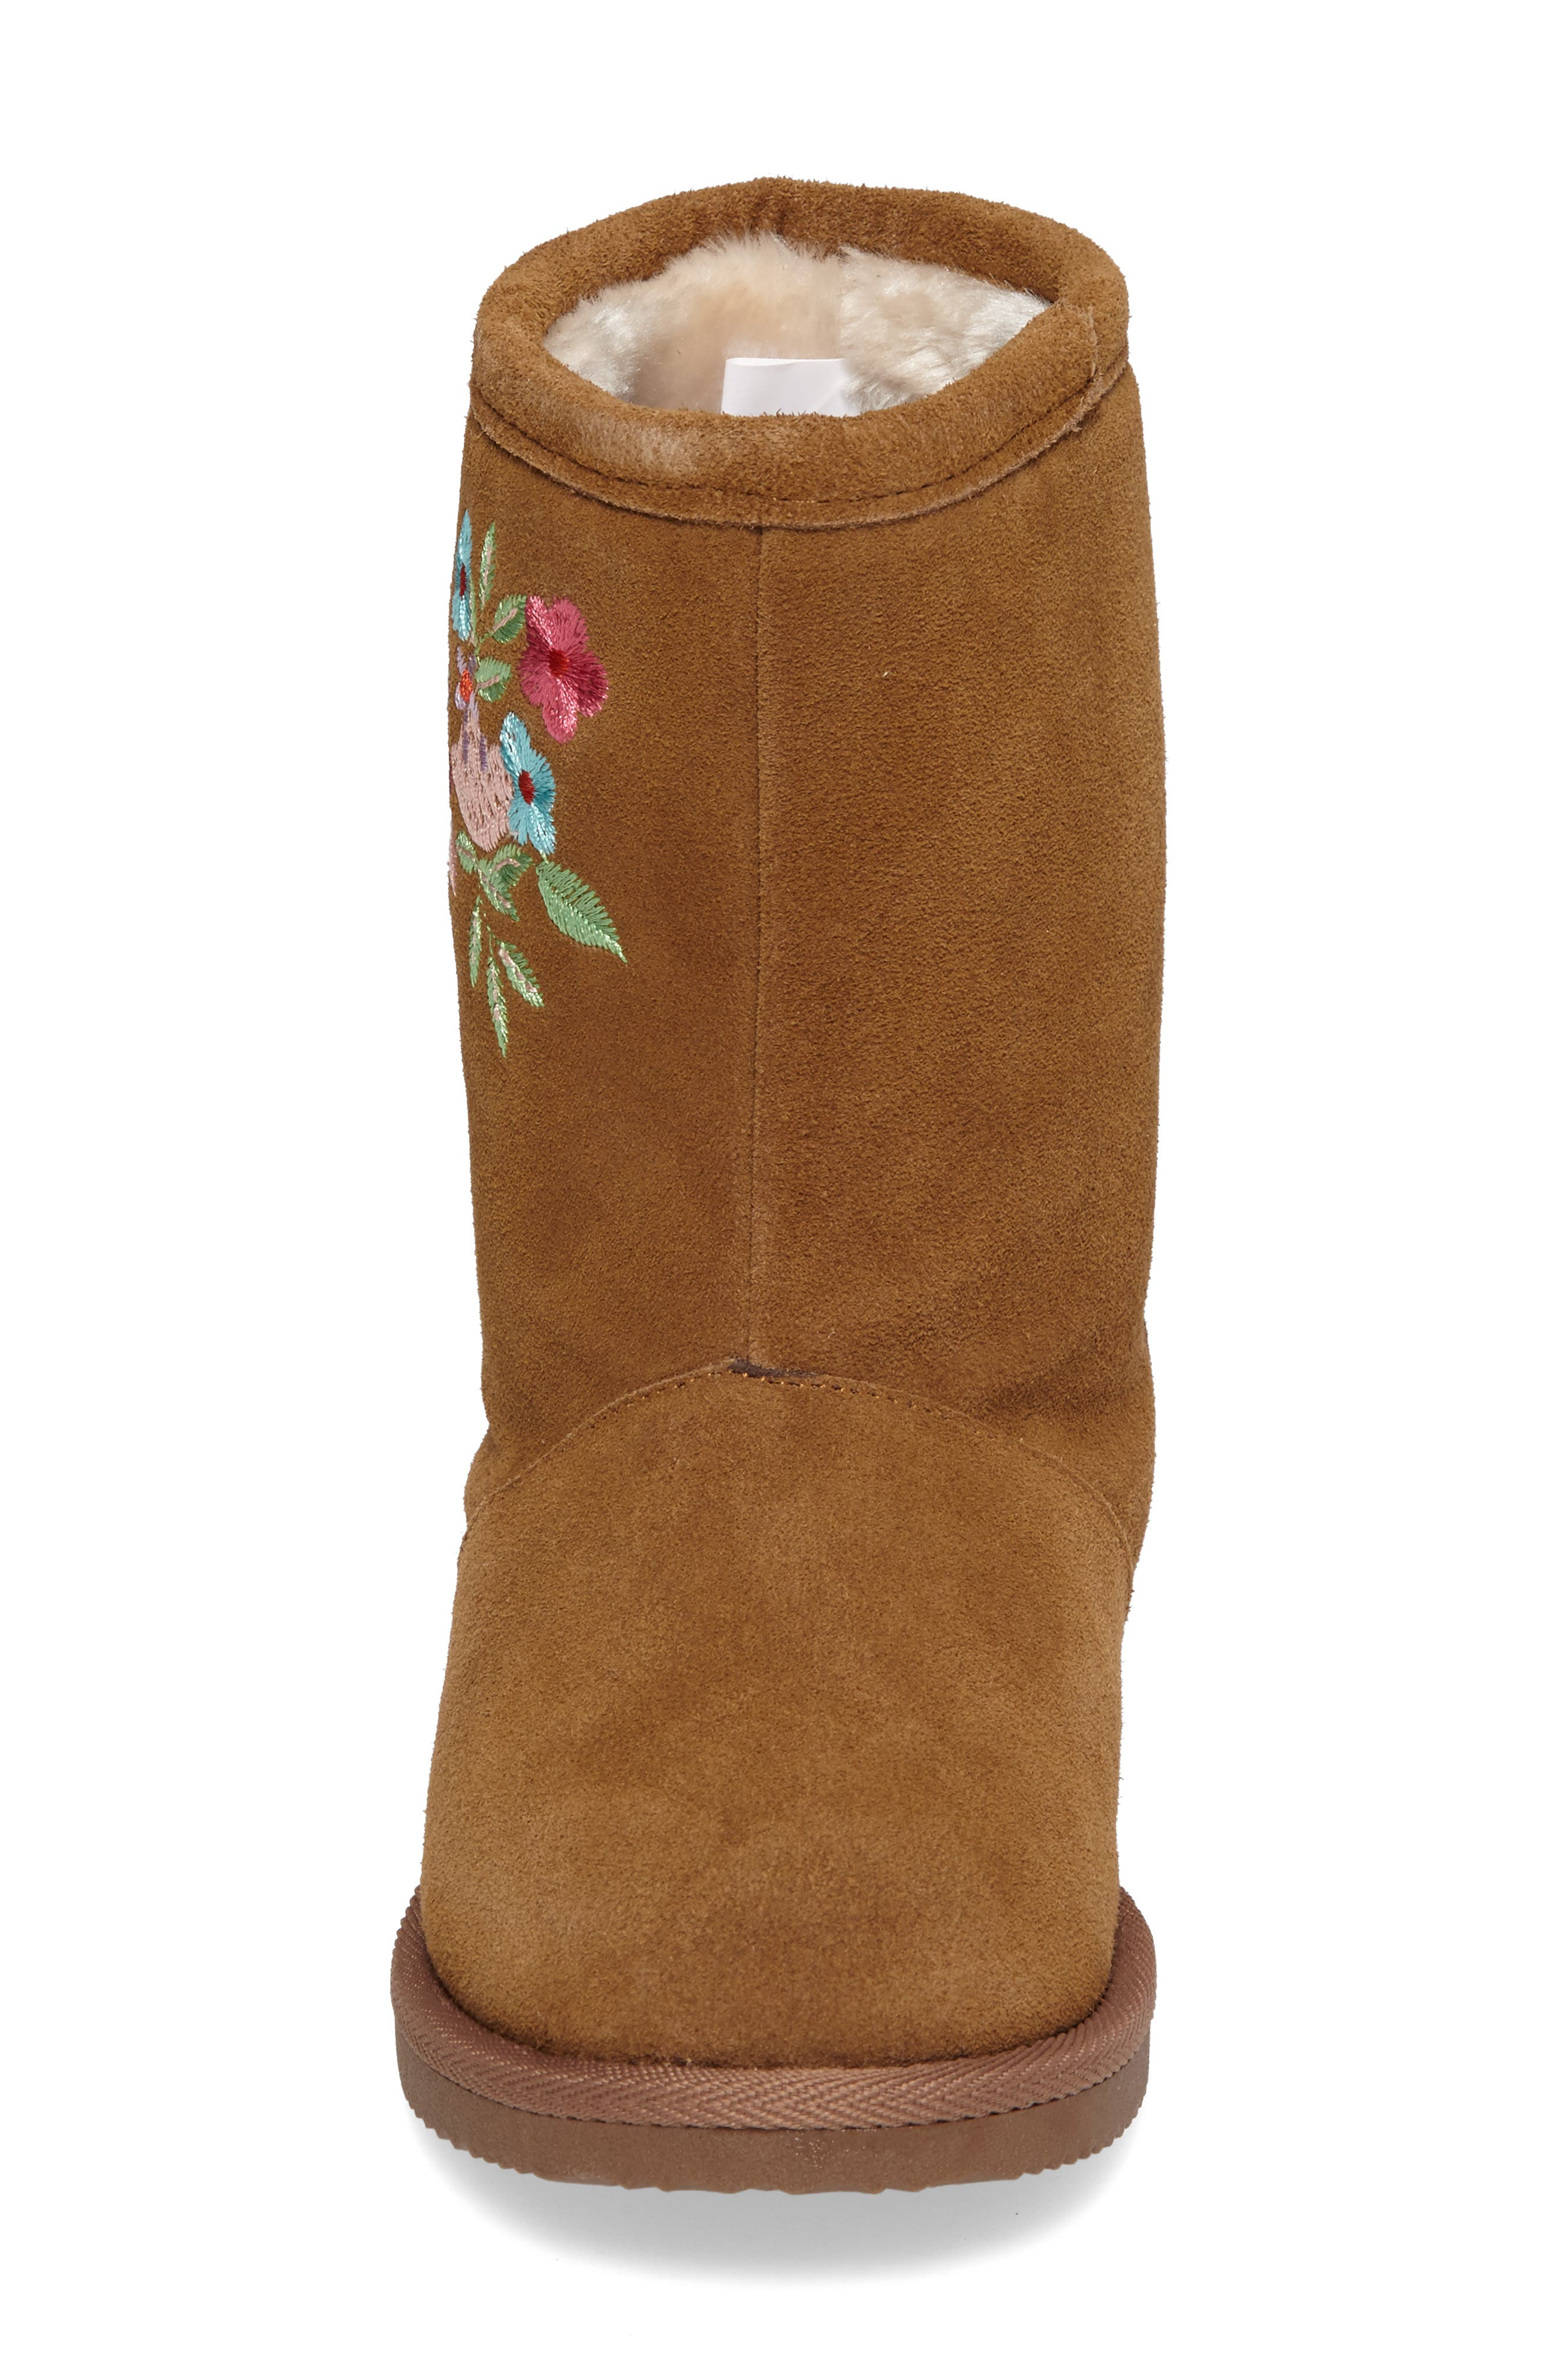 Aline Embroidered Faux Fur Boot,                             Alternate thumbnail 4, color,                             Chestnut Suede